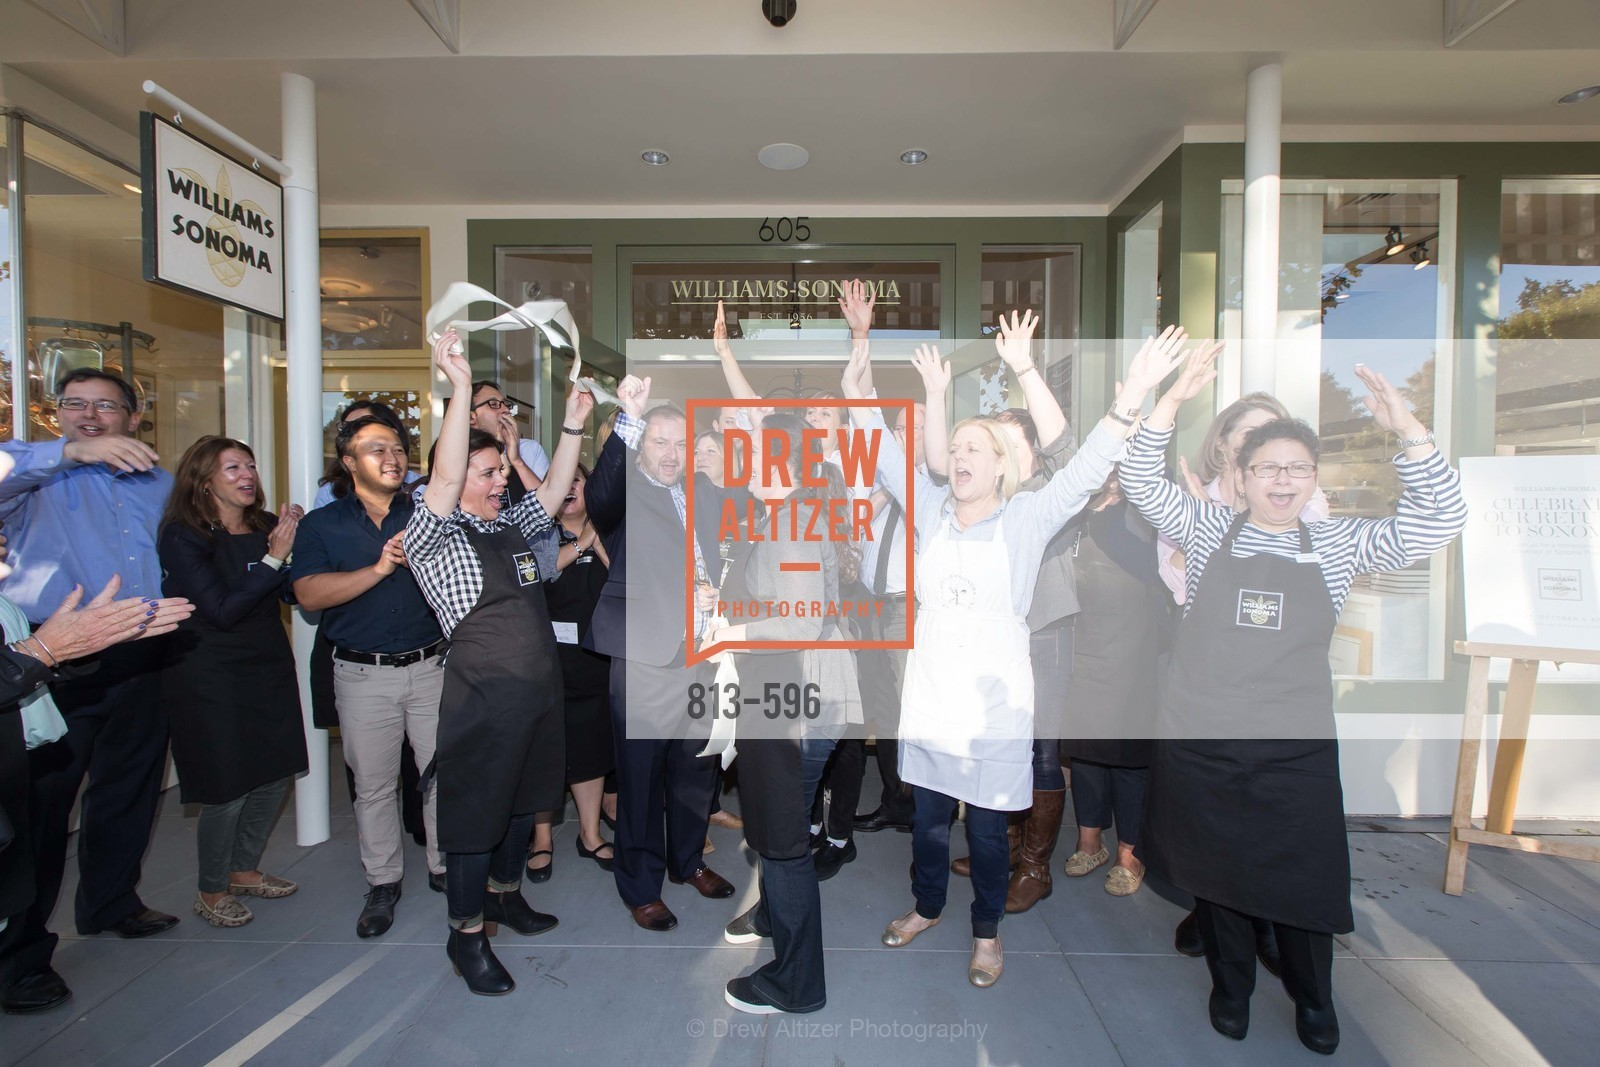 Extras, WILLIAMS-SONOMA Grand Re-Opening Breakfast, October 5th, 2014, Photo,Drew Altizer, Drew Altizer Photography, full-service event agency, private events, San Francisco photographer, photographer California